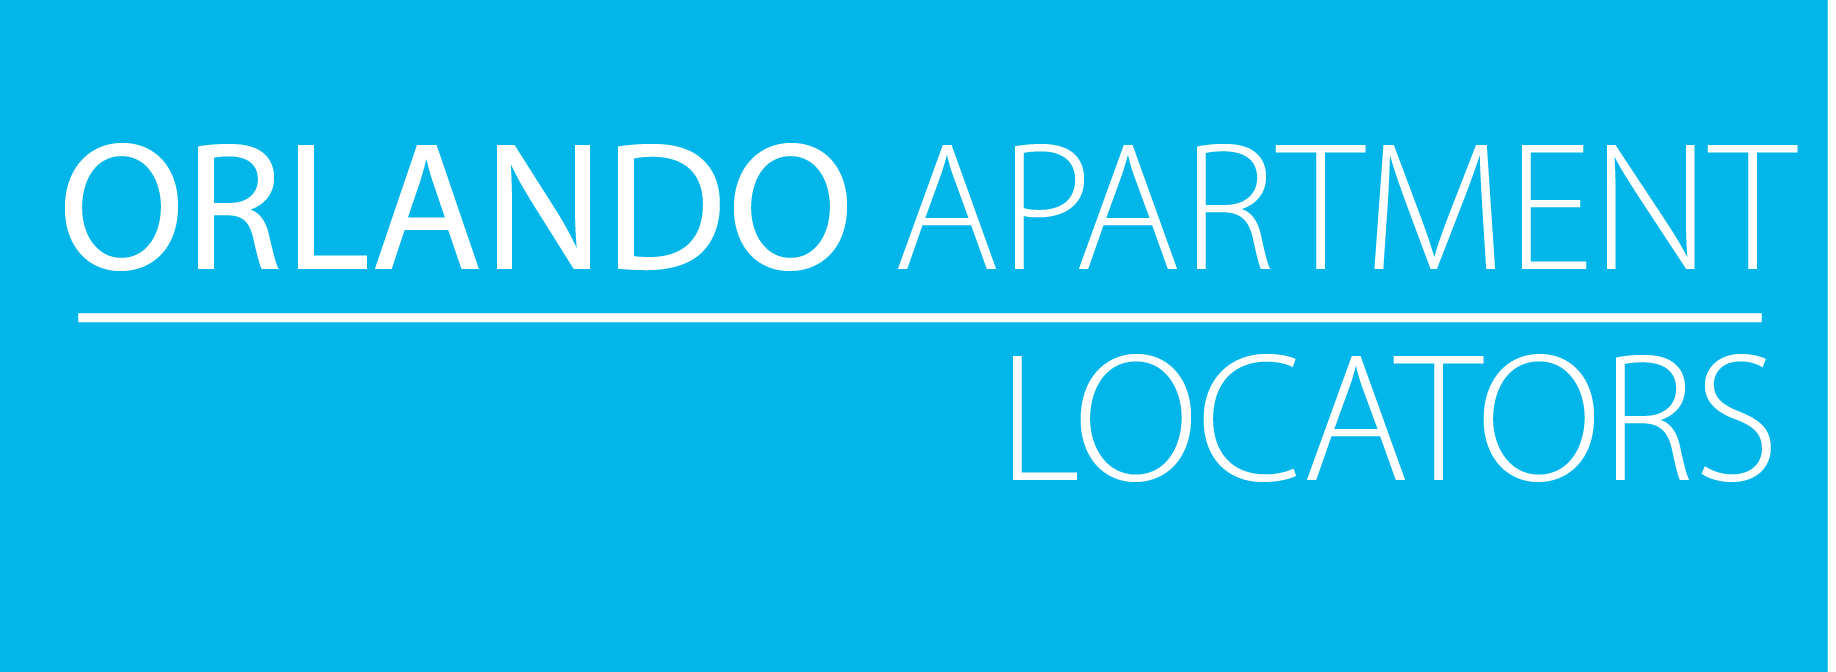 Orlando Apartment Locators Logo Large ...